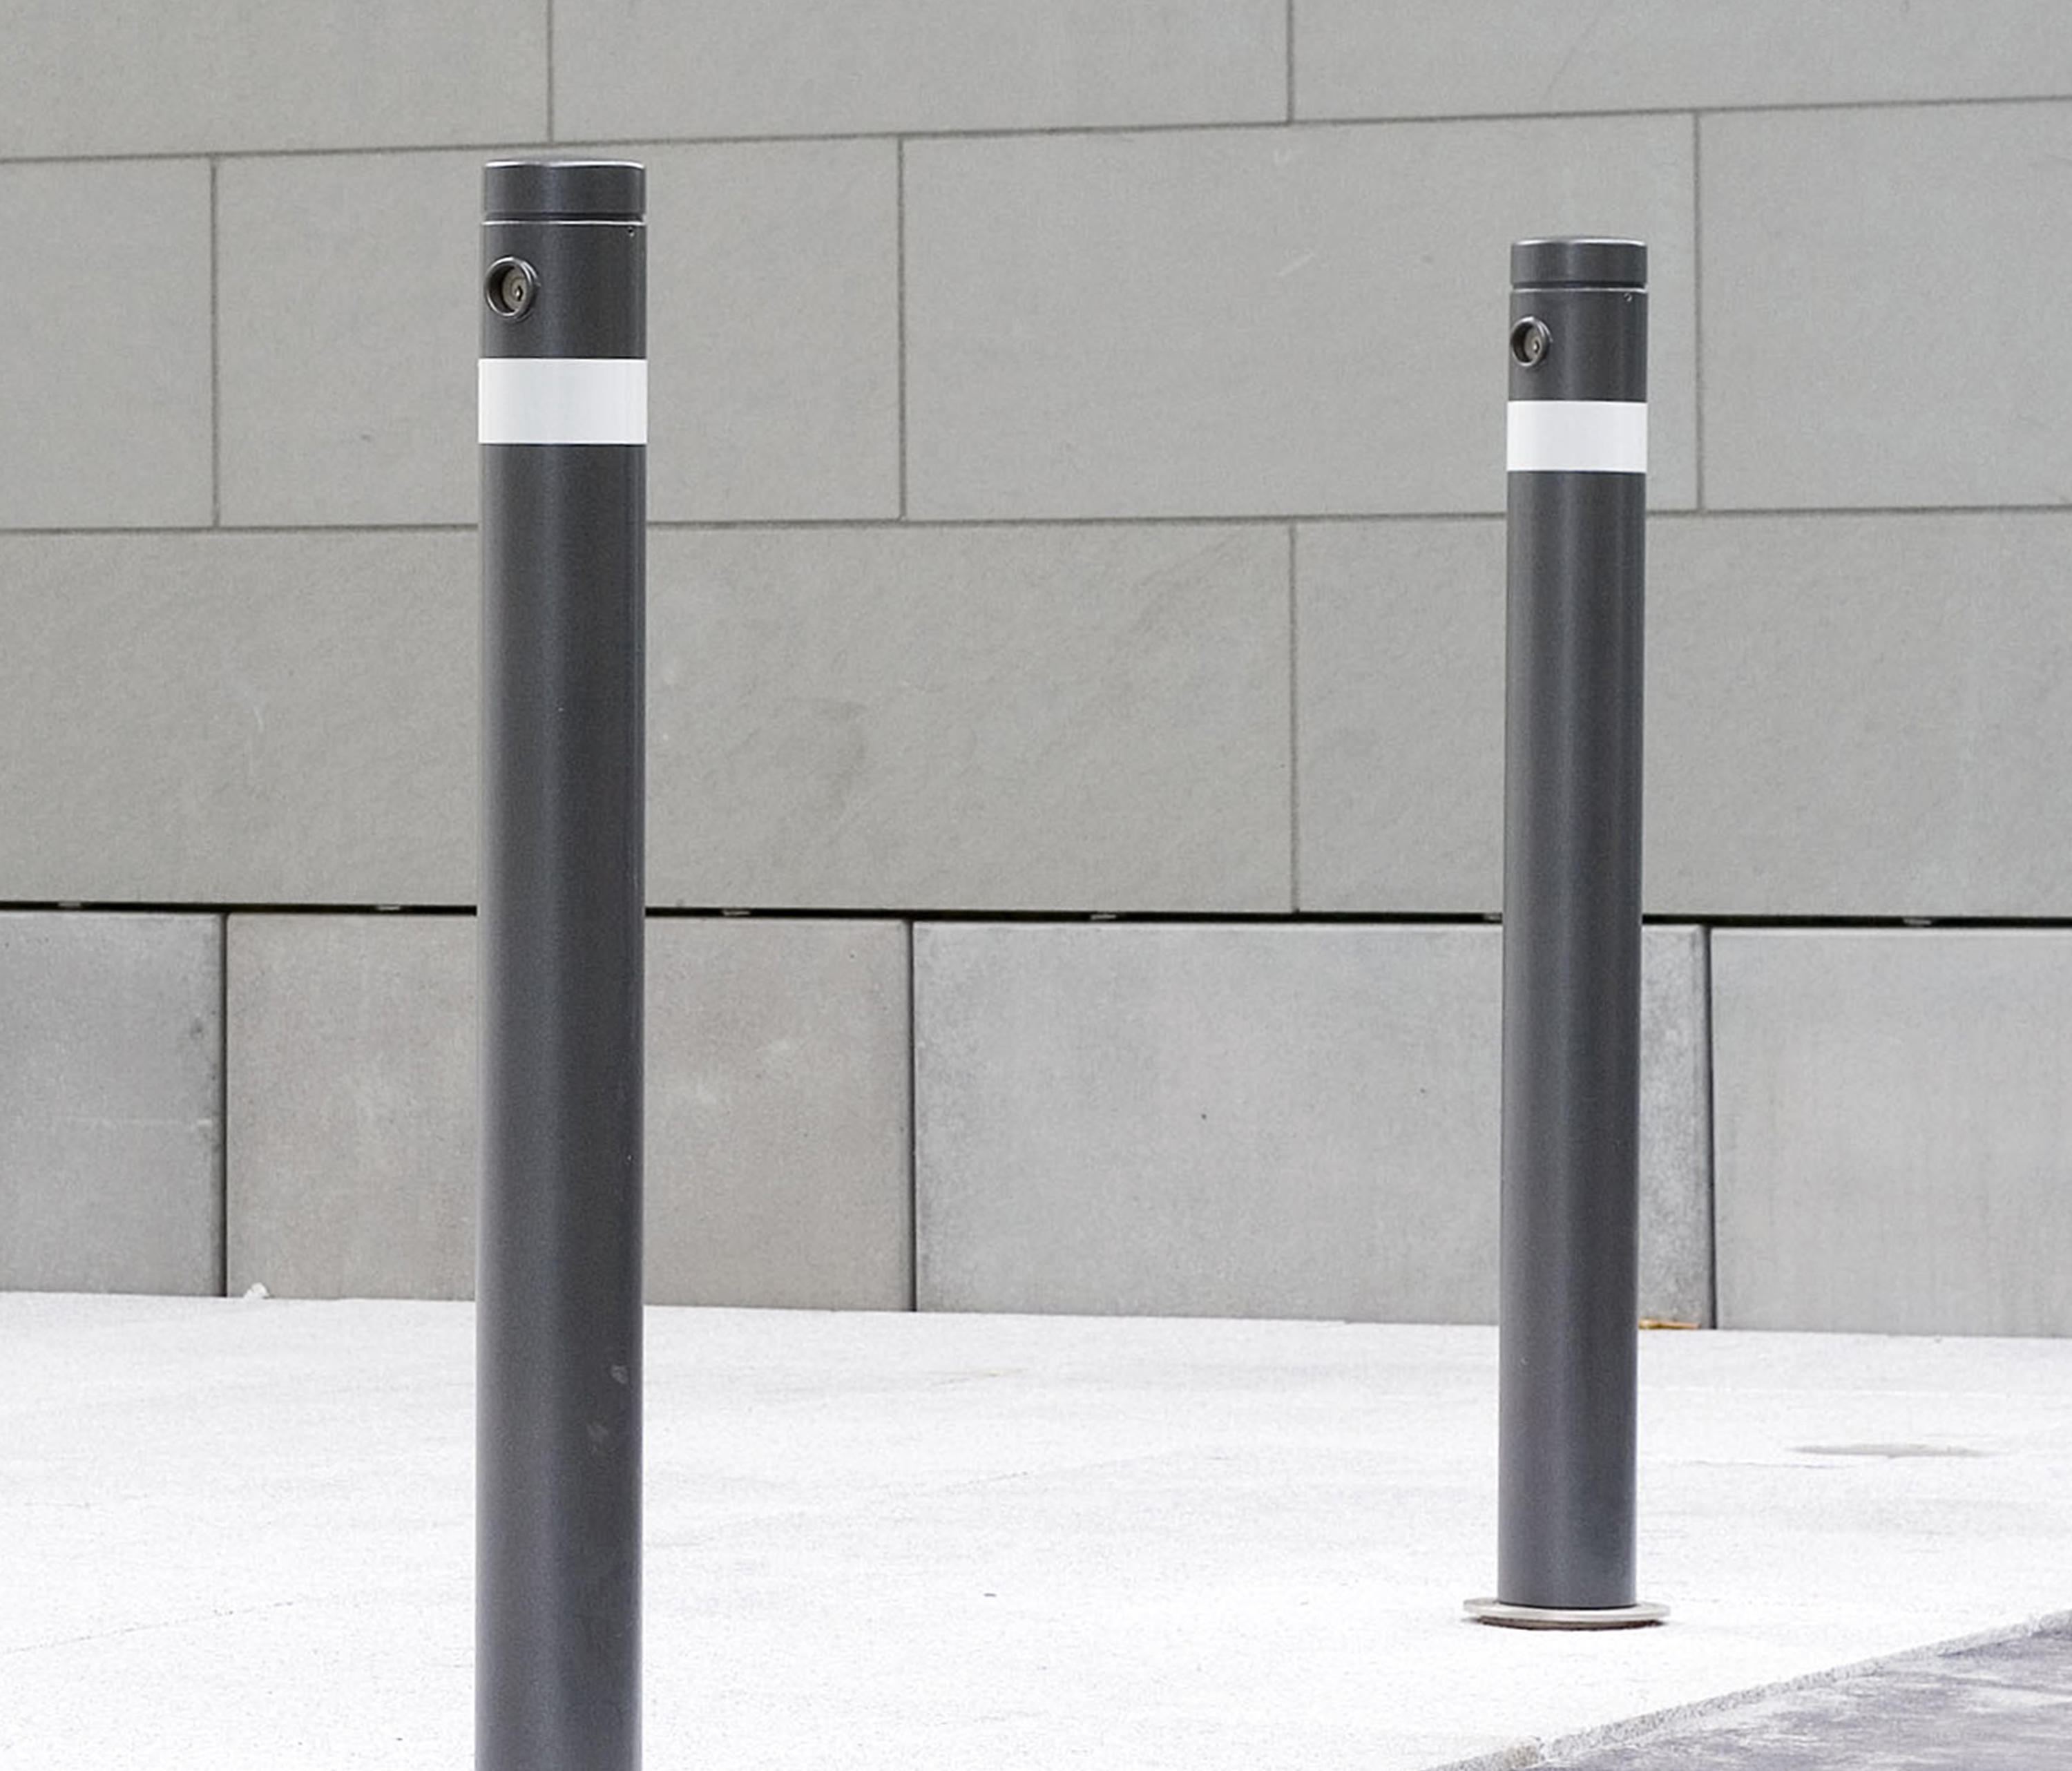 Post: PUBLIC BOLLARD REMOVABLE BARRIER POST